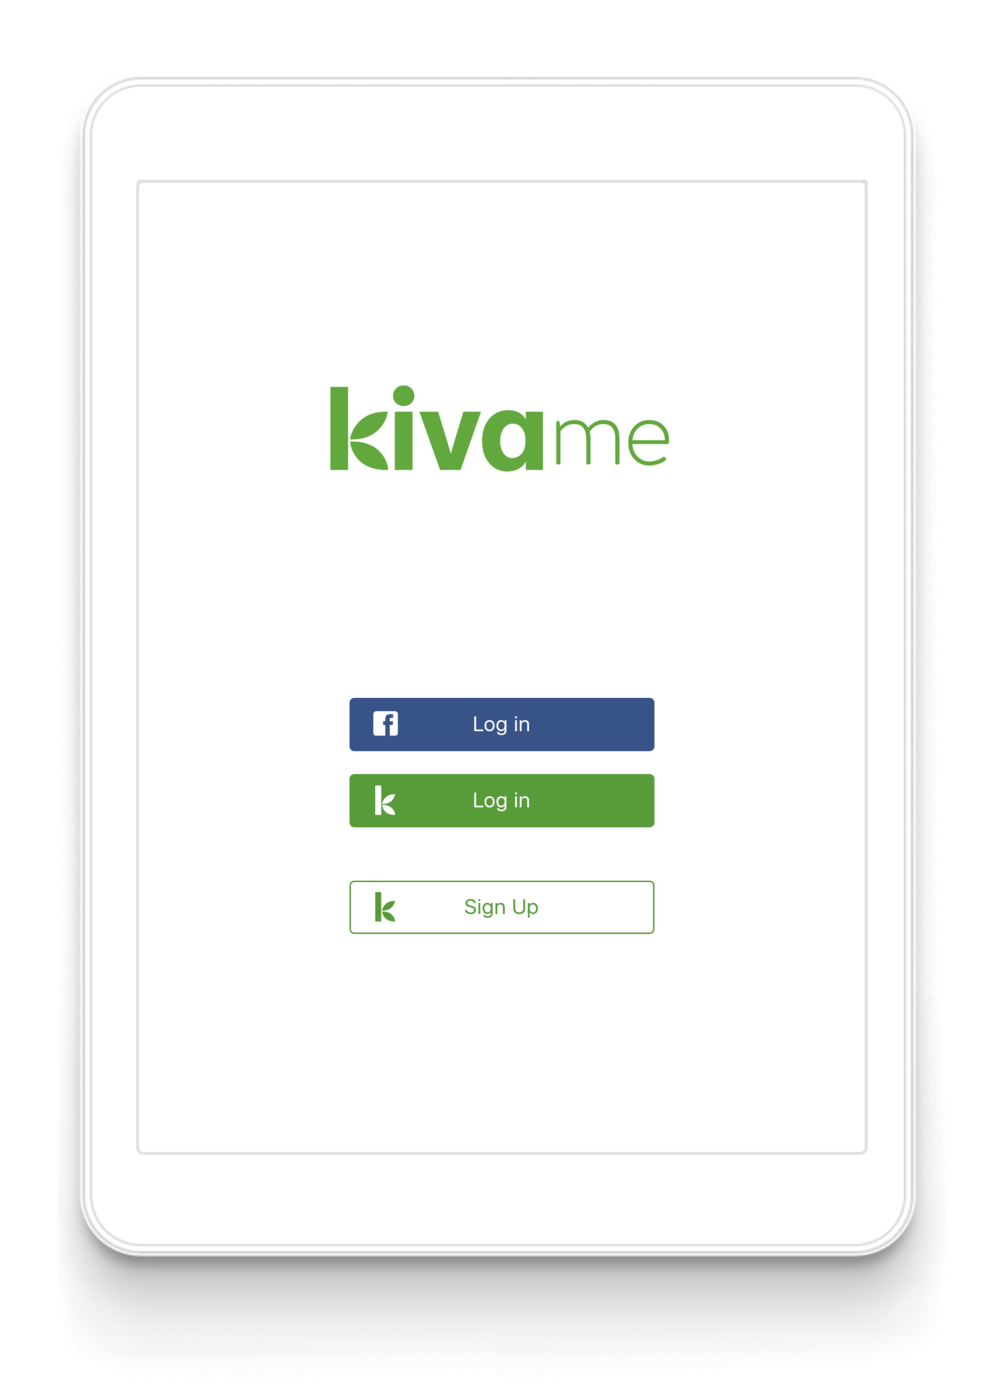 KivaME ipad_login2.jpg